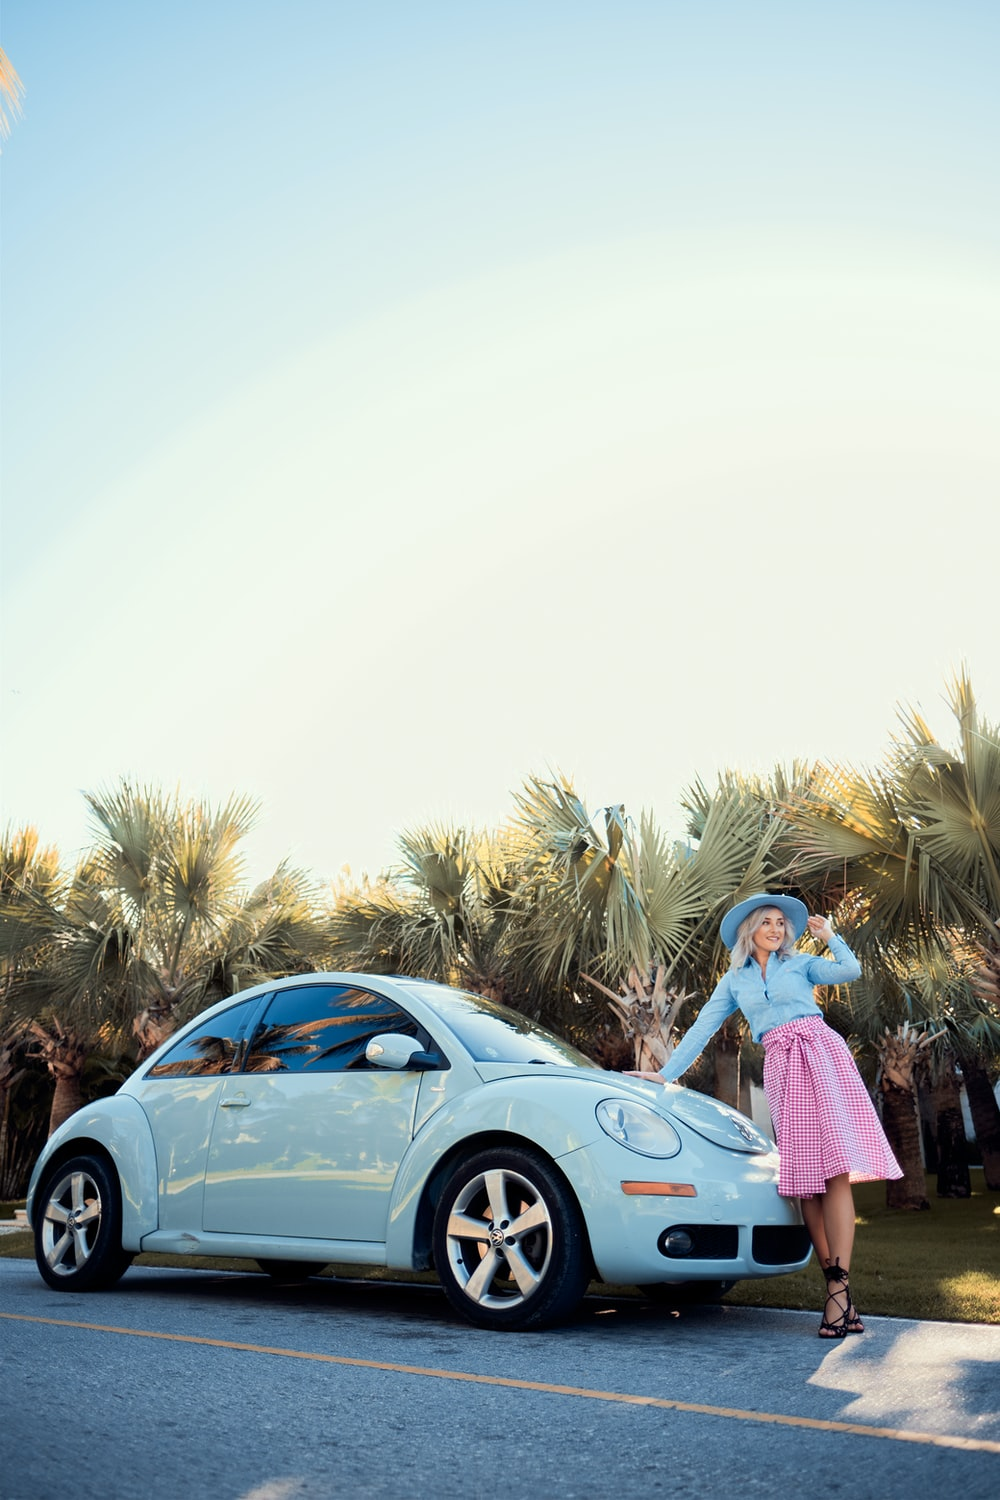 woman in pink dress standing beside blue car during daytime